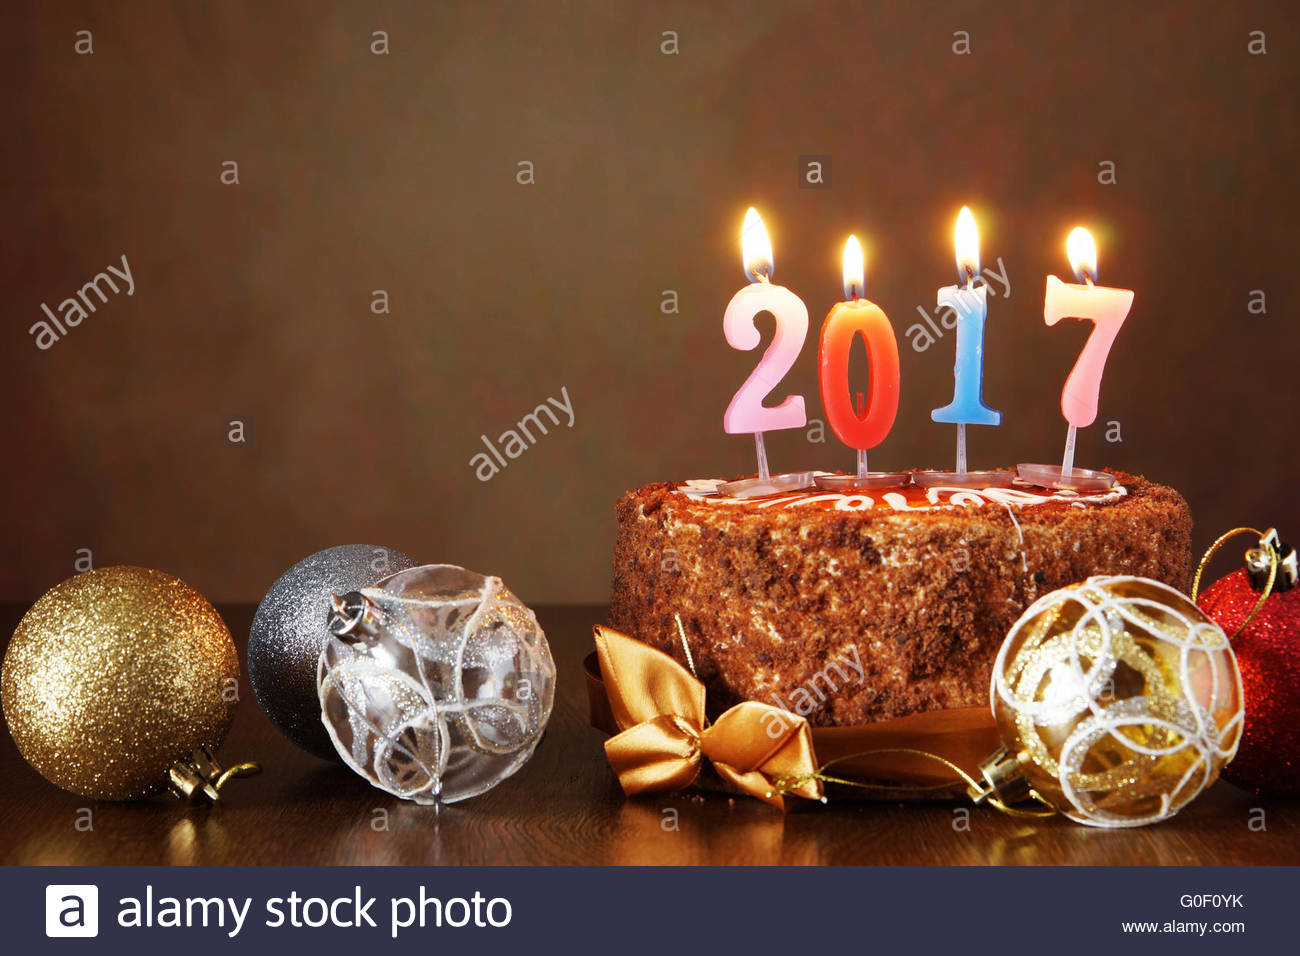 New Year Cake Images 2018 : New Year s Day Cakes Yummy & Delicious Cakes of Happy ...